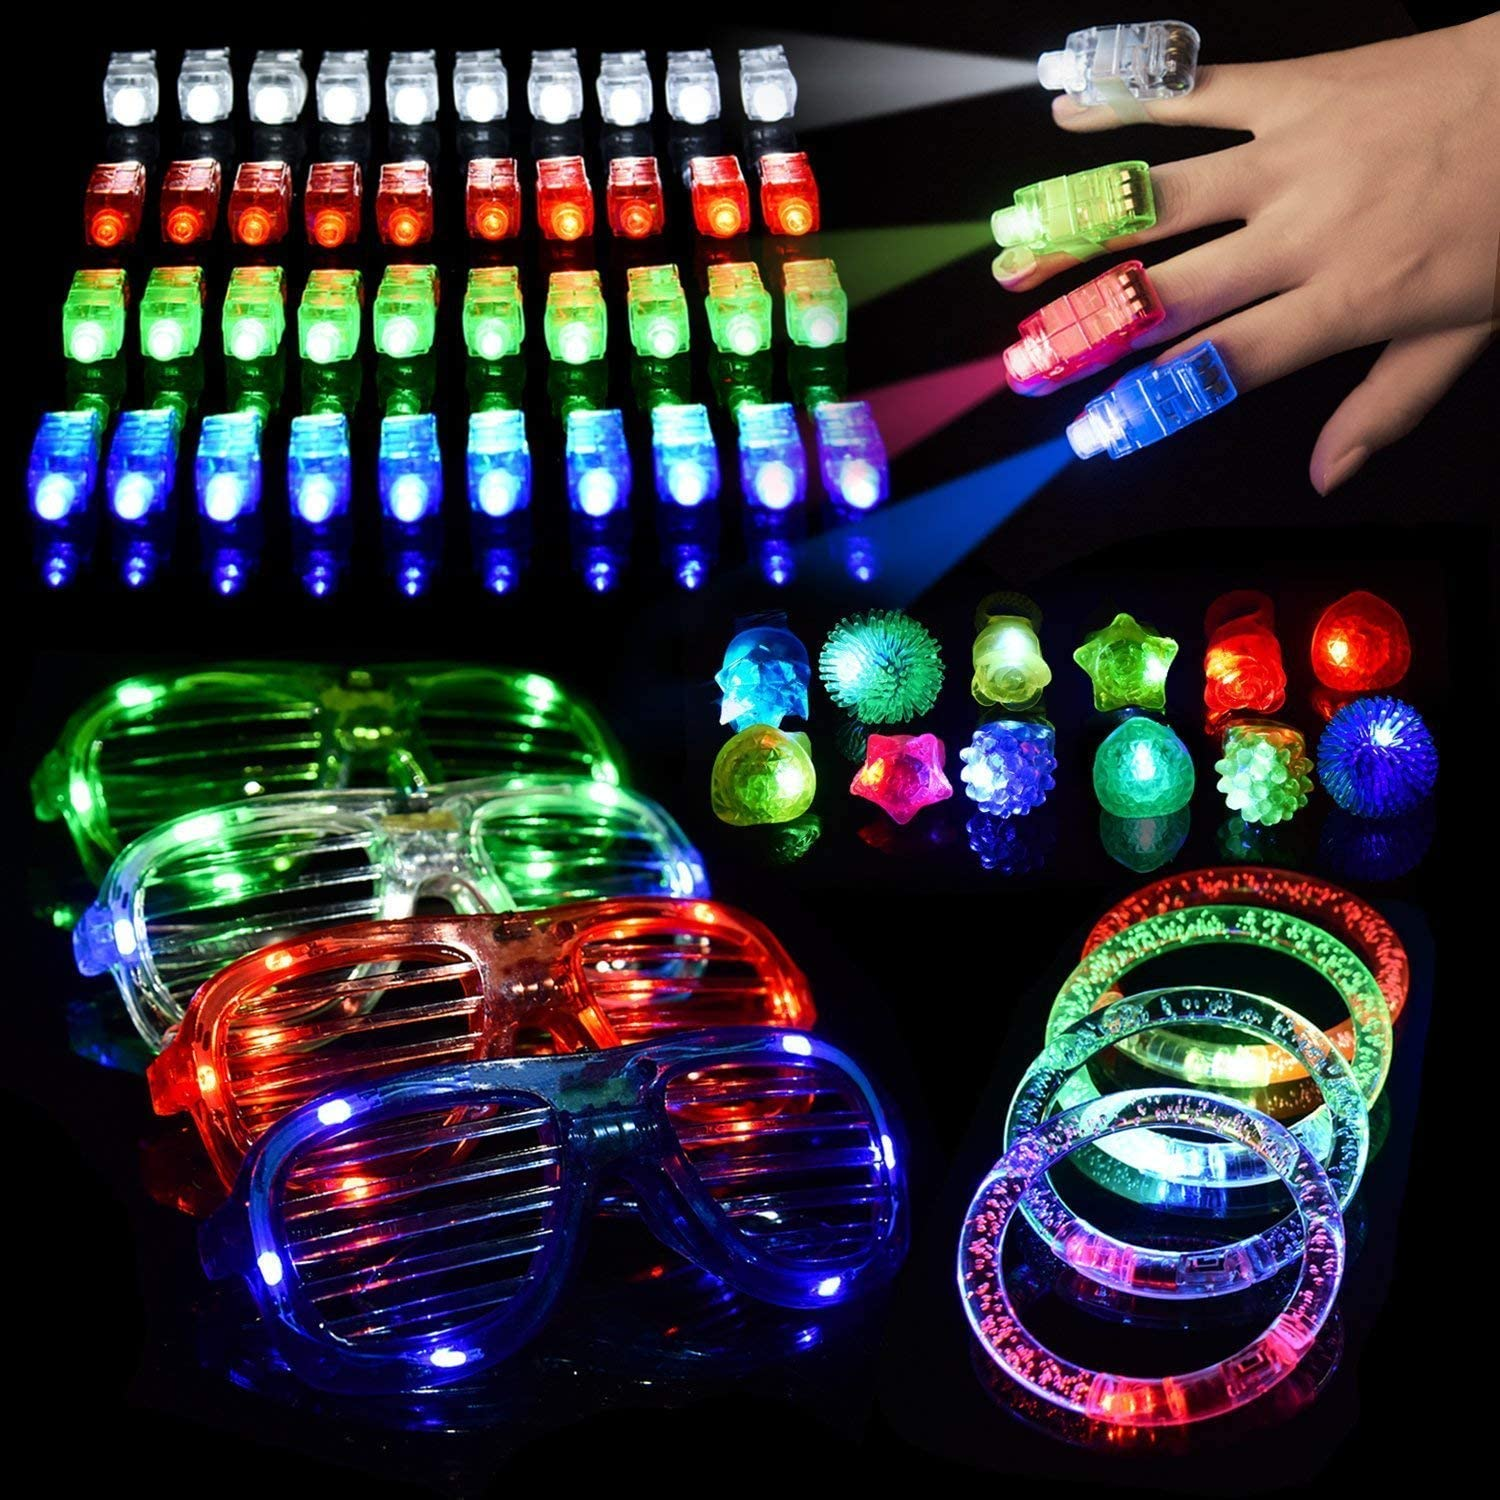 60PCs LED Light Up Toys Glow in The Dark Party Supplies, Glow Stick Party Pack for Kids Party Favors Including 40 Finger Lights, 12 Flashing Bumpy Rings, 4 Bracelets and More